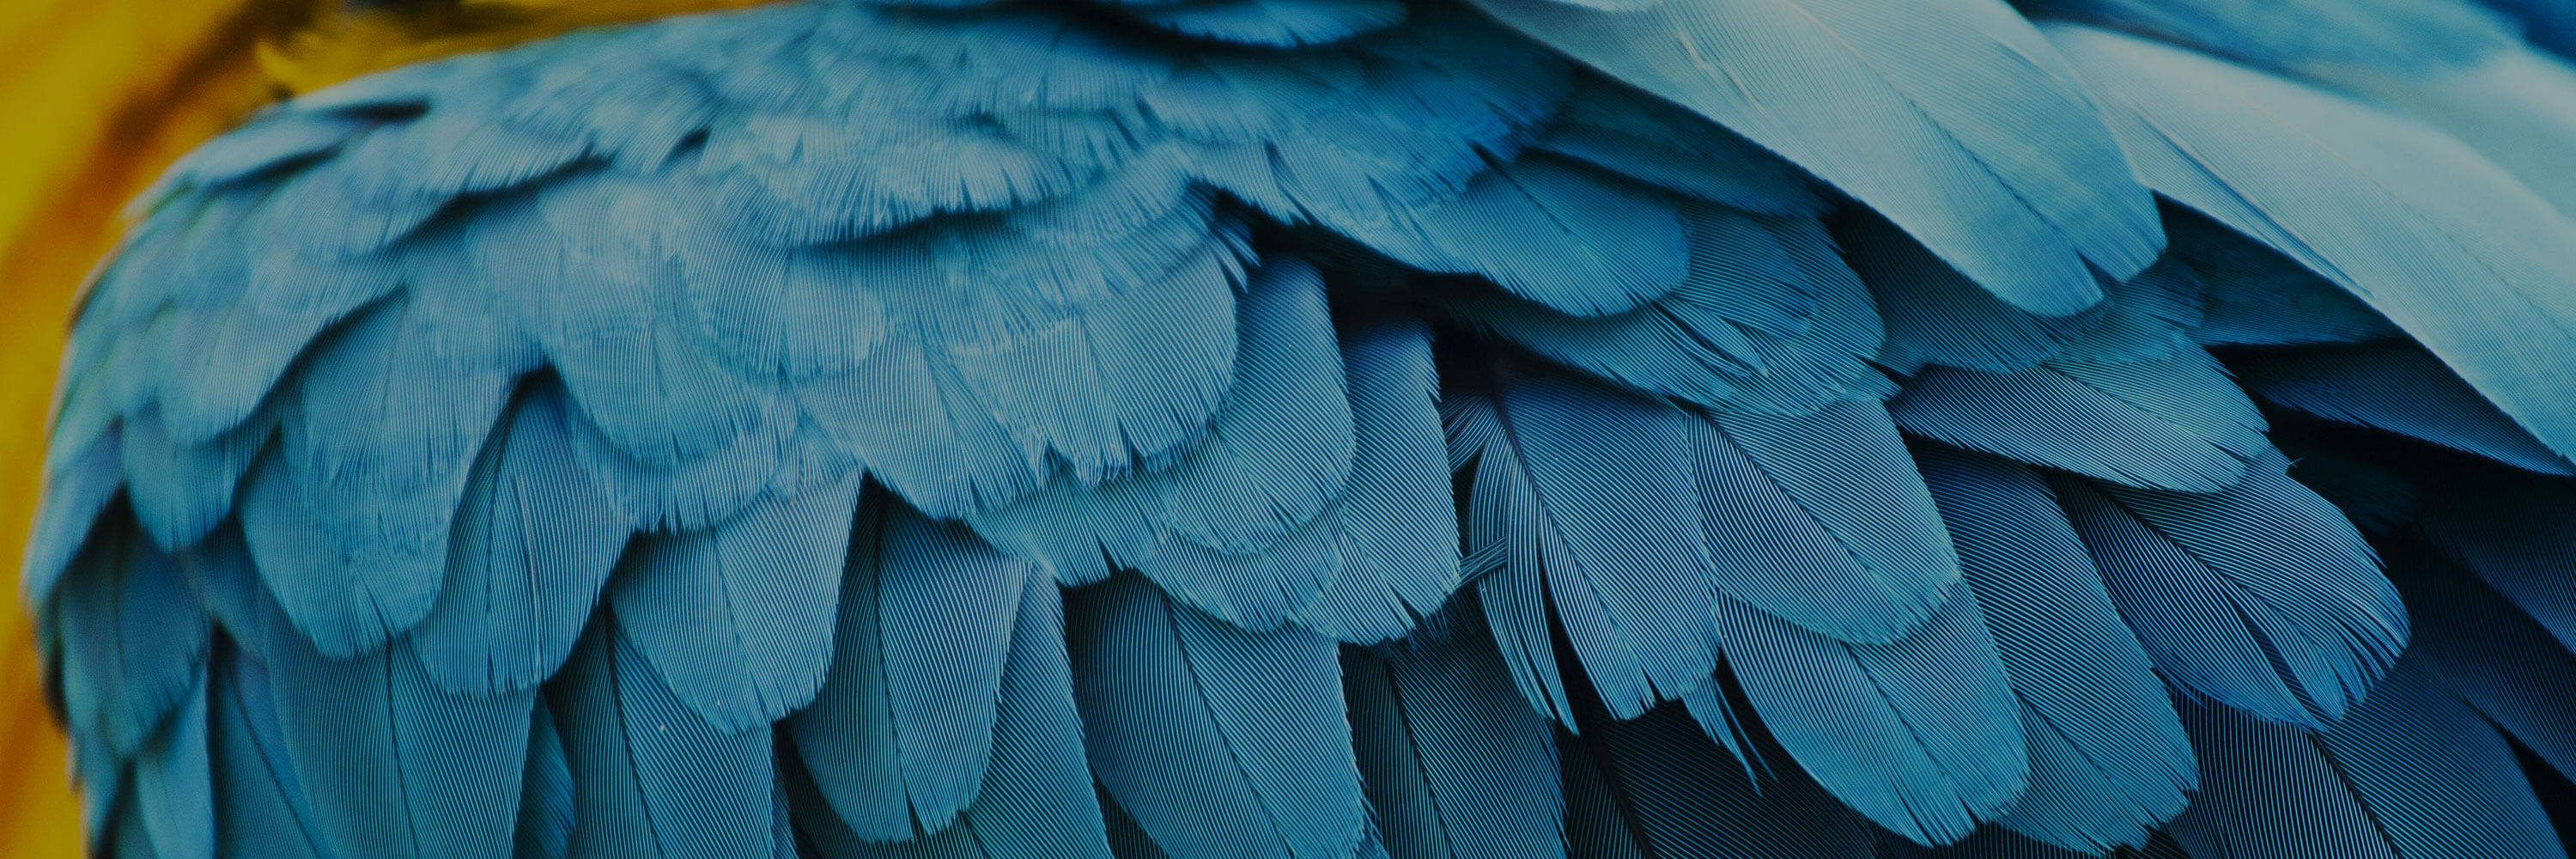 Blue and yellow feathers of a bird